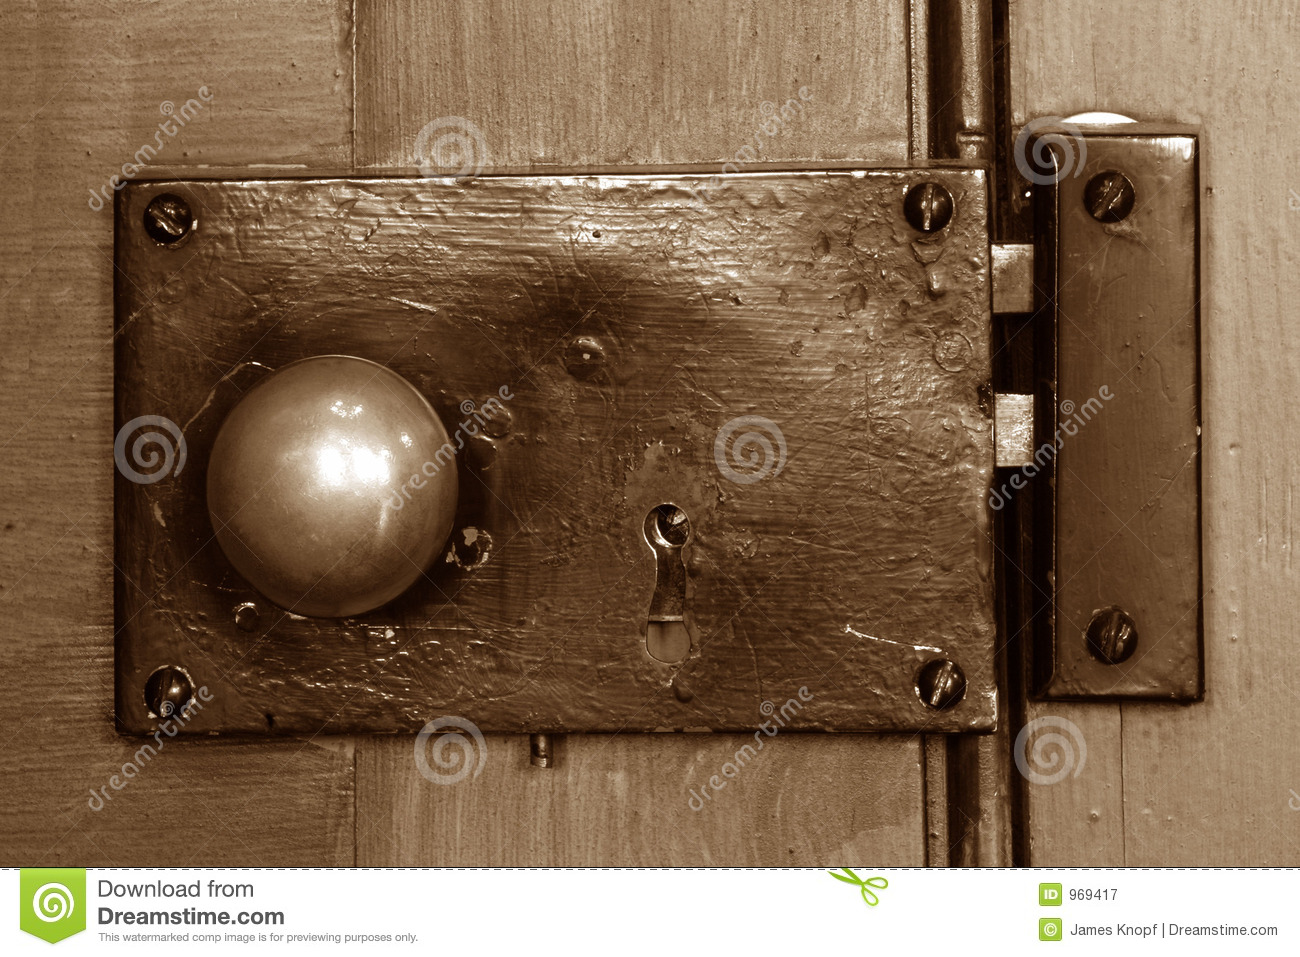 old post office door knob royalty free stock photography - Vintage Door Knobs